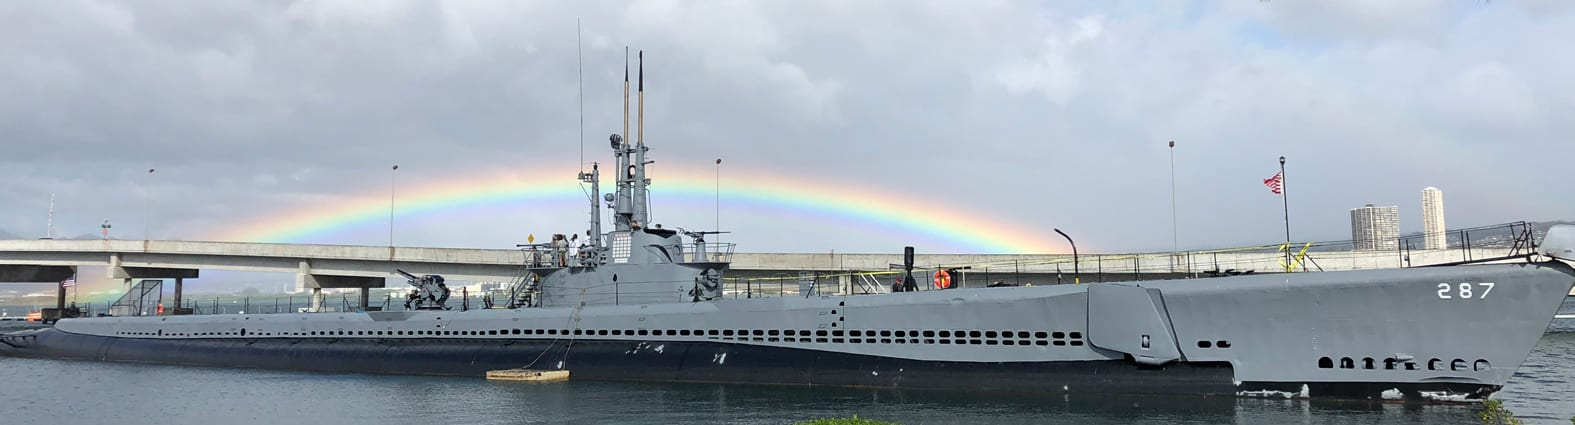 Pearl Harbor Tours From Maui Hawaii - 2244